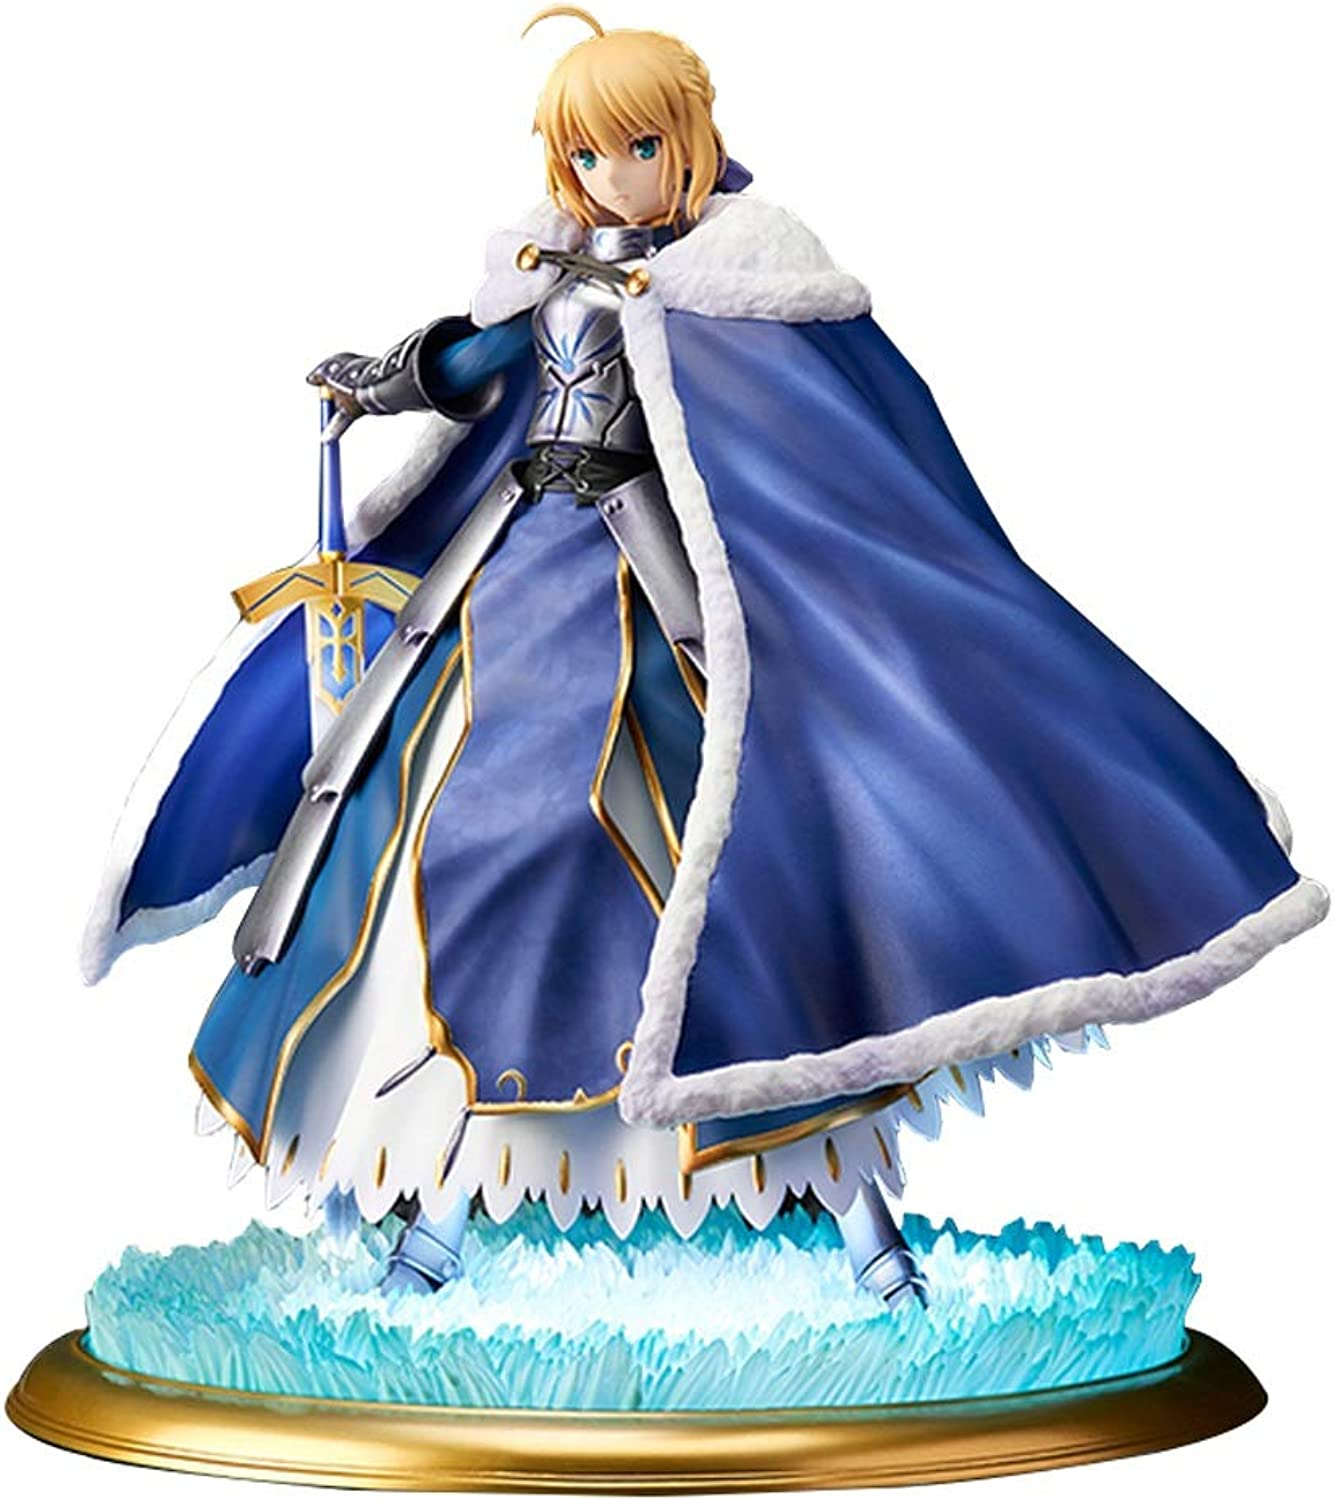 Siyushop Fate Grand Order Saber Altria Pendragon Deluxe PVC Figure Highly Detailed Accurate Sculpt  Equipped With Weapons  High 25CM